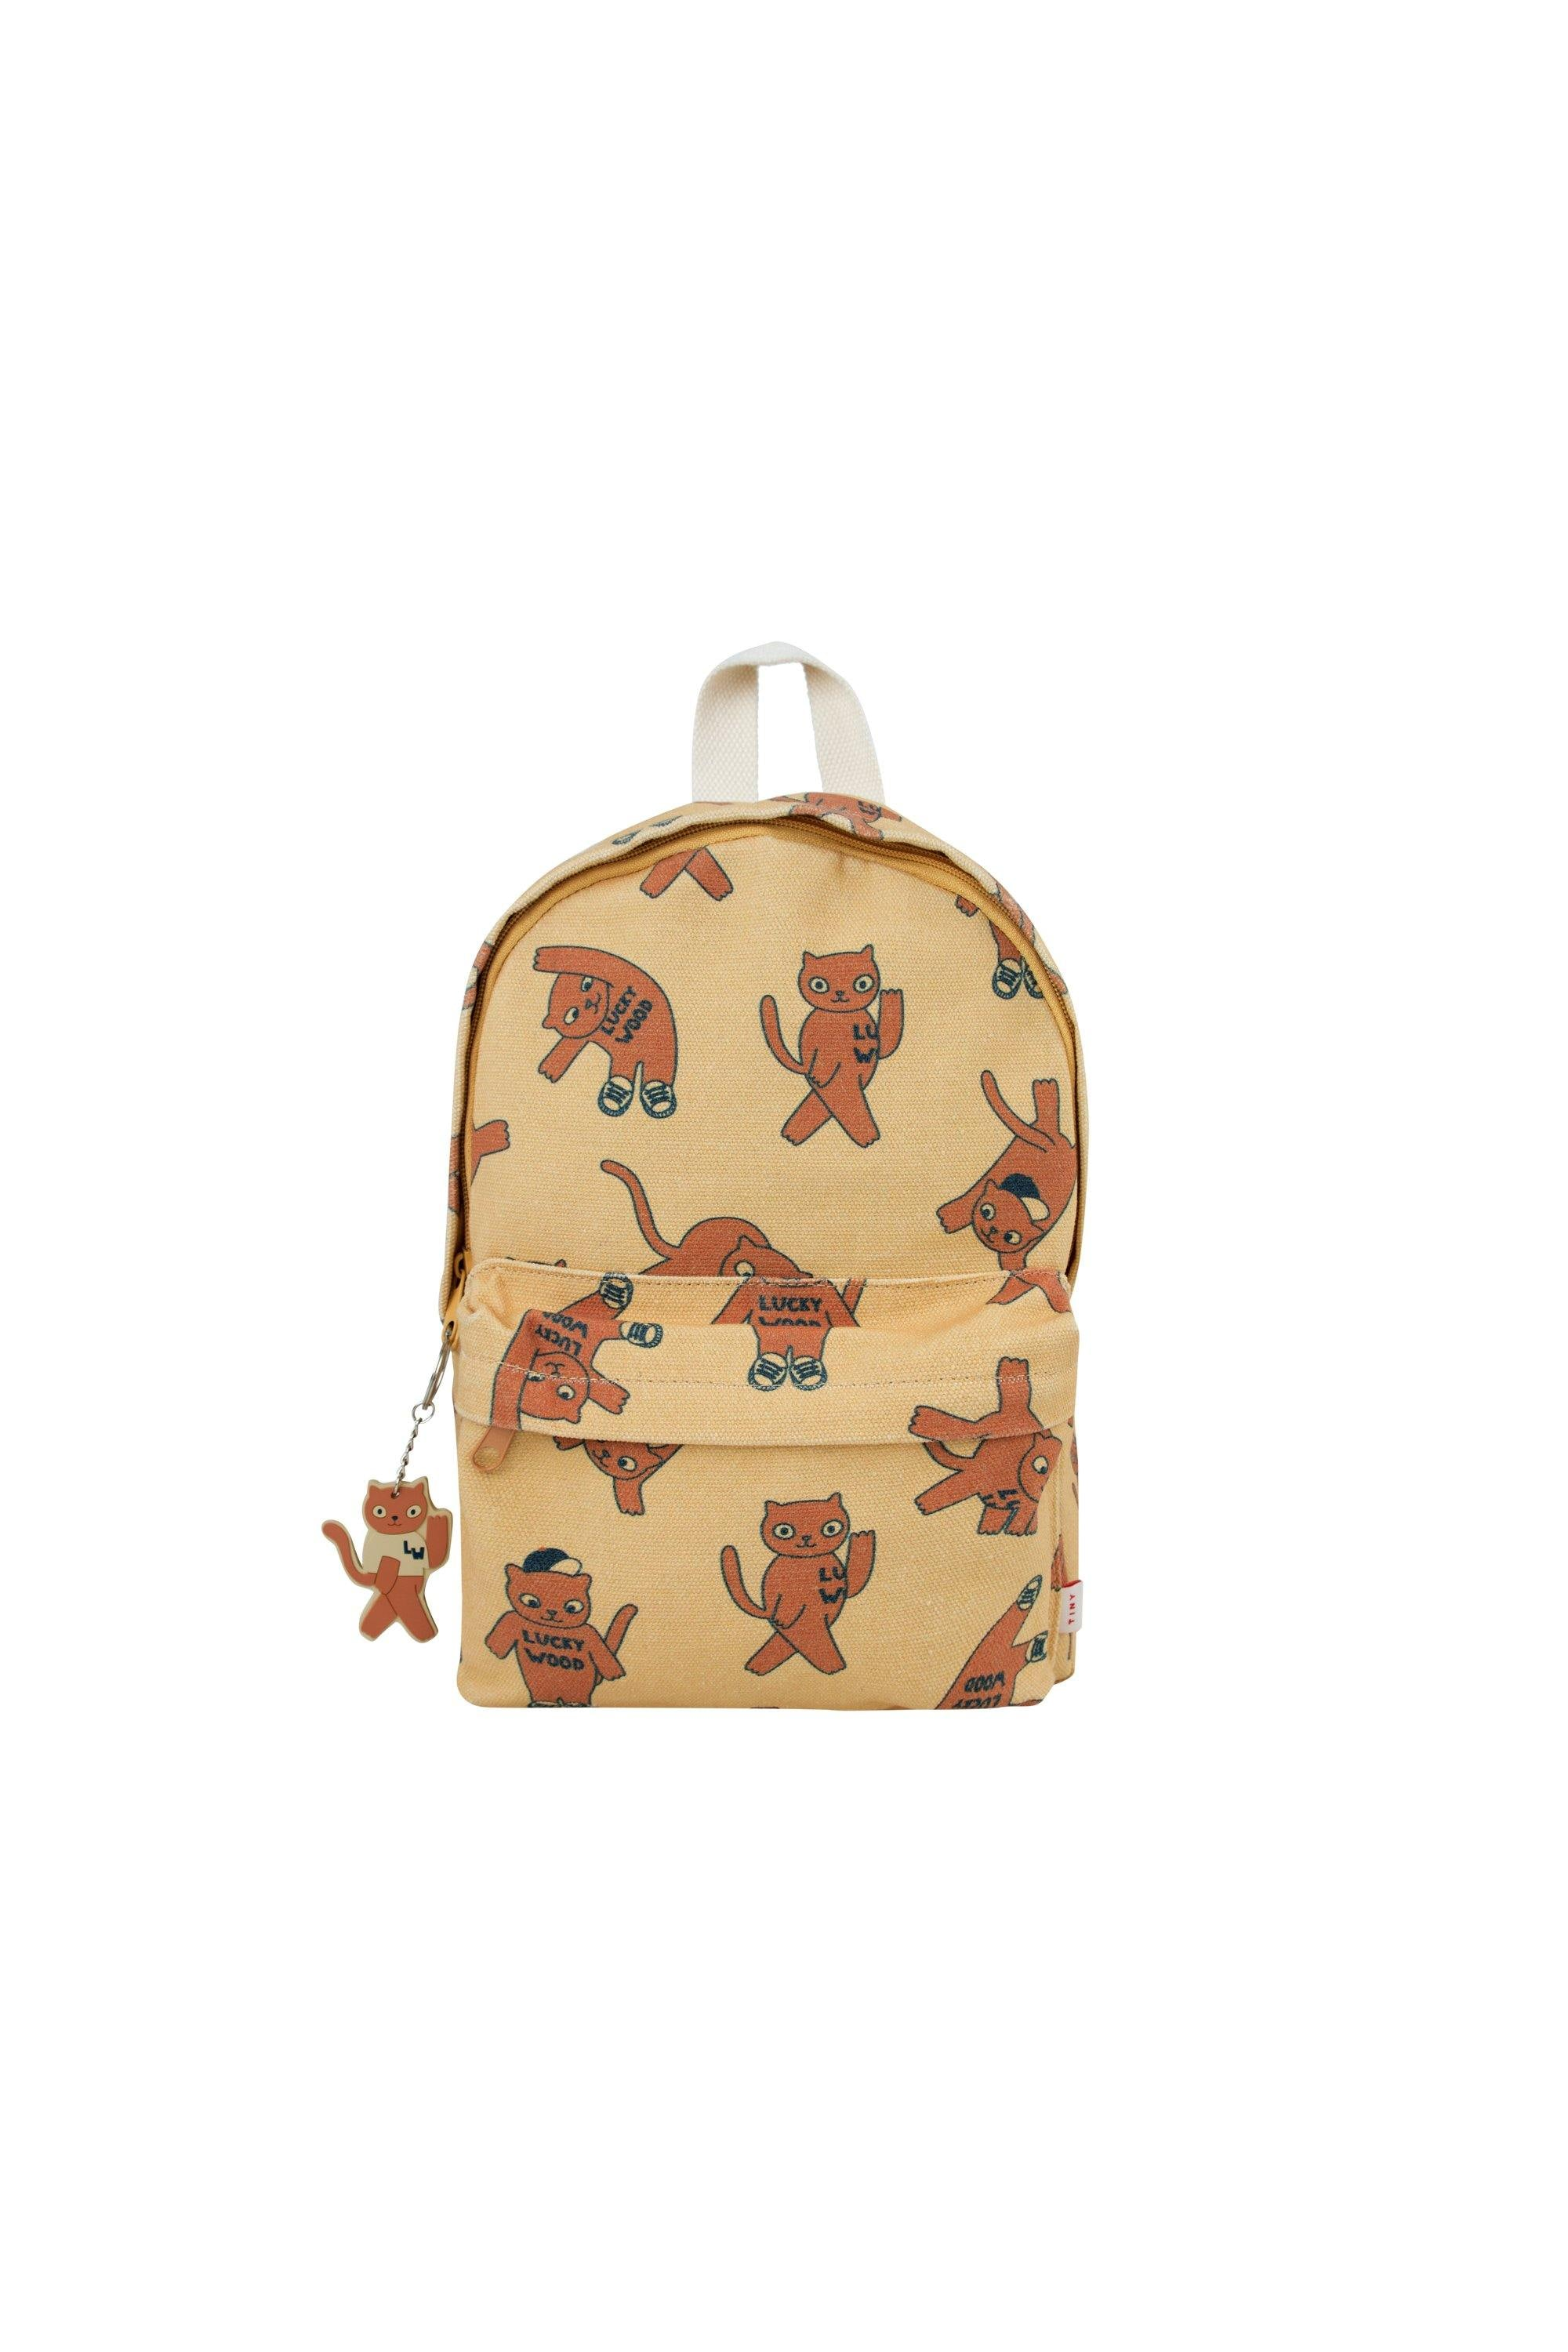 'CATS'' BACKPACK sand/brown